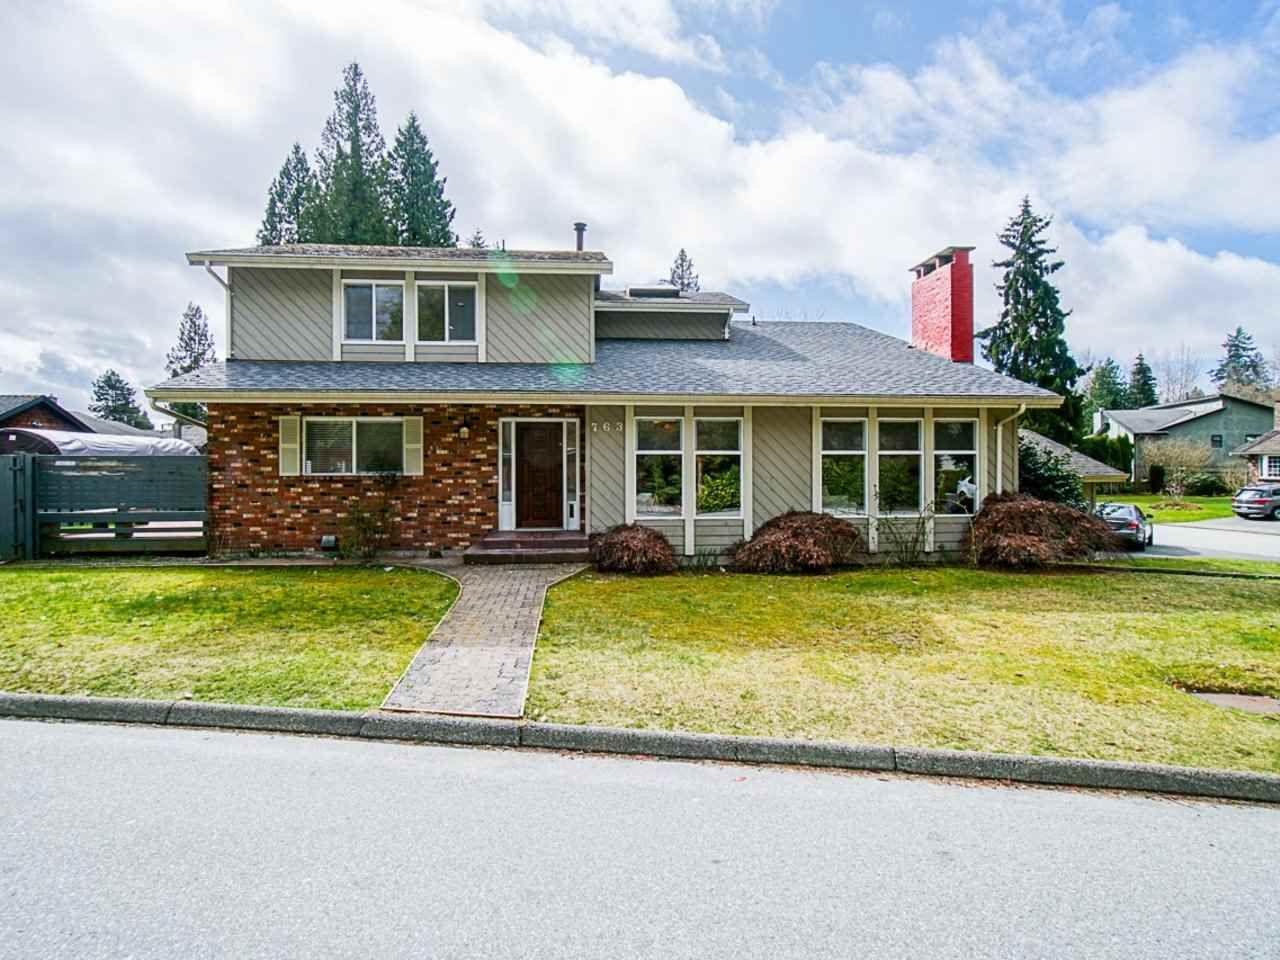 Main Photo: 763 WEYMOUTH Drive in North Vancouver: Lynn Valley House for sale : MLS®# R2557549